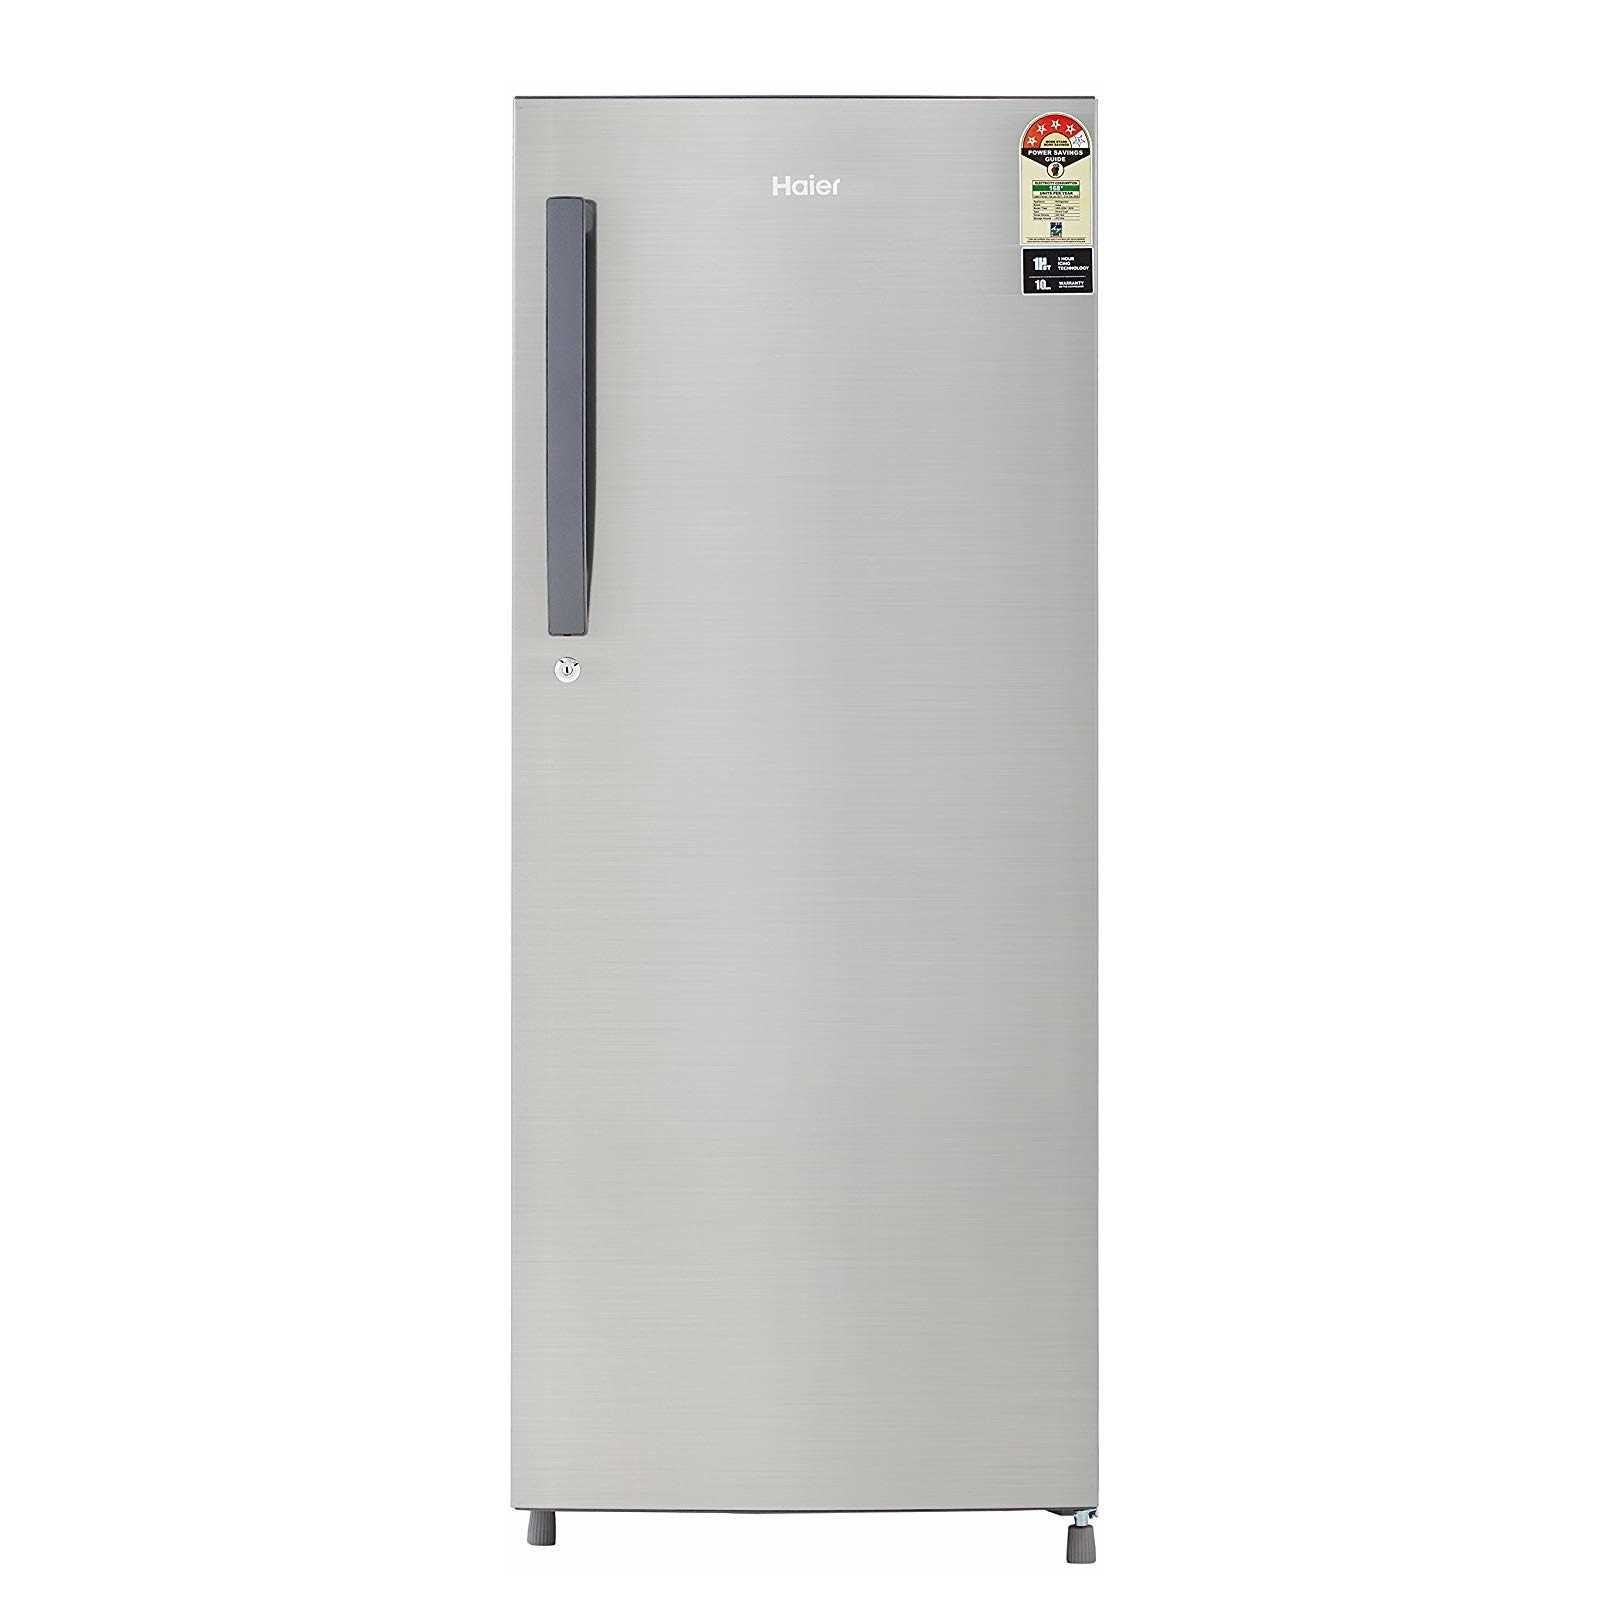 Haier HED 22FSS 220 Liter Direct Cool Single Door Refrigerator